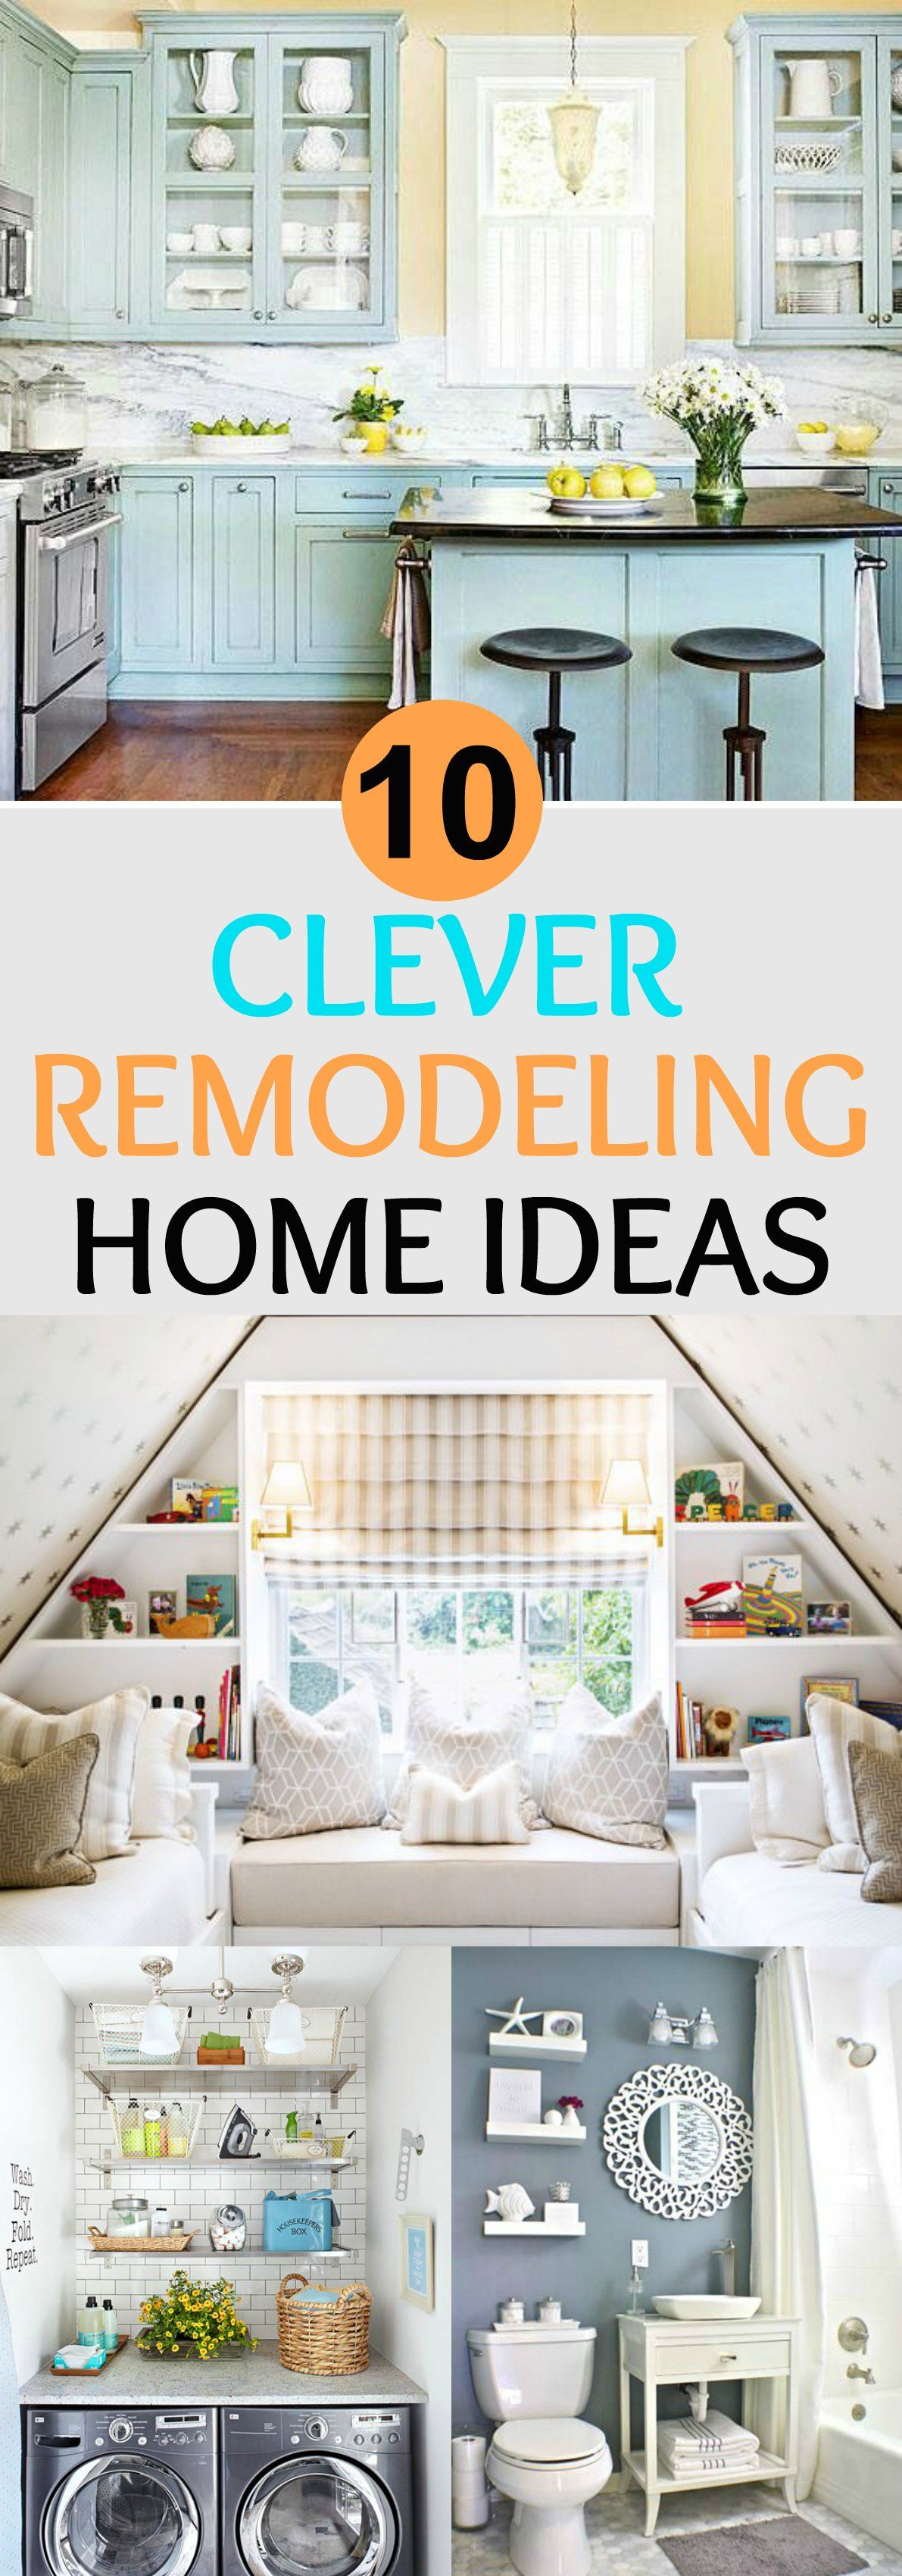 10 Clever Remodeling Ideas For Your Home | Clever, Board and Group